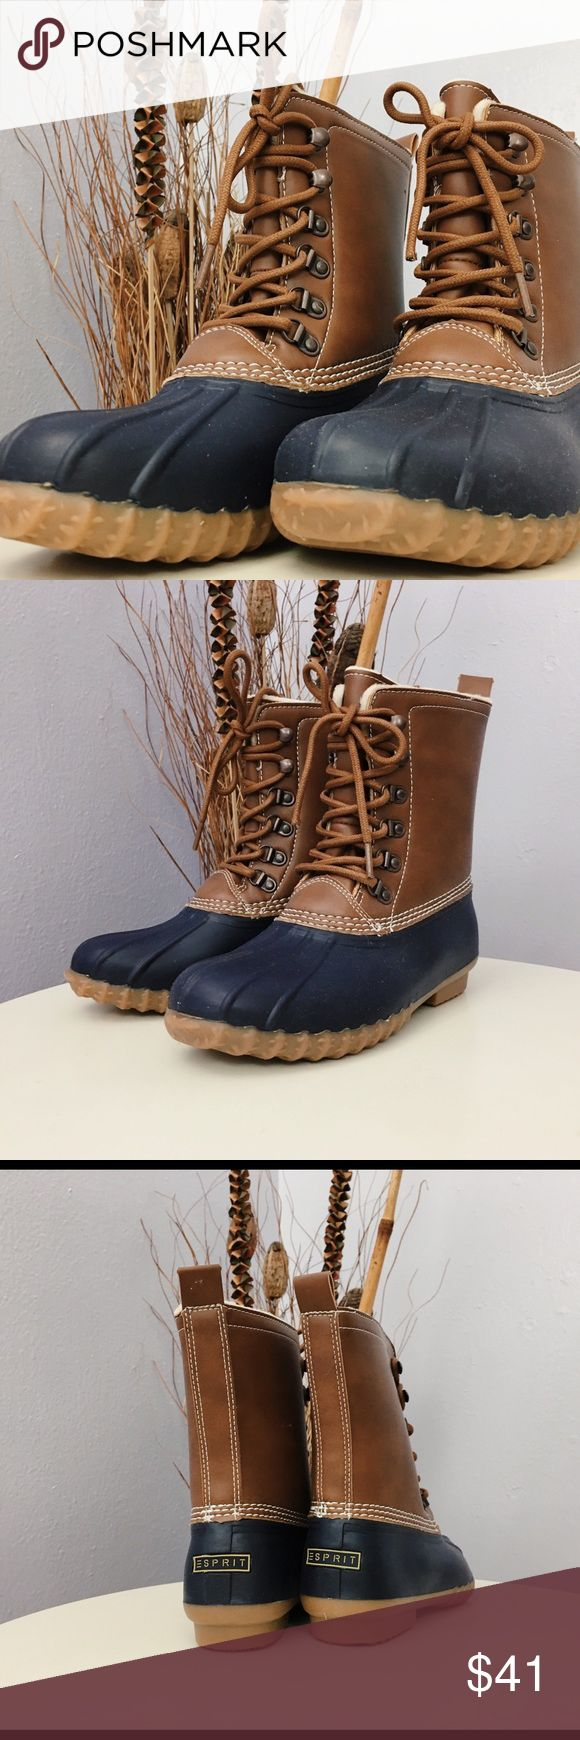 "Esprit Women's Lace Up Duck Boot Whiskey Navy Sz 6 Brand new with box Lace up Duck Boot Whiskey/navy color. Size 6M Shaft height: approx 7.5"" Circumference: approx 12"" Style # 1000122757 Esprit Shoes Lace Up Boots"